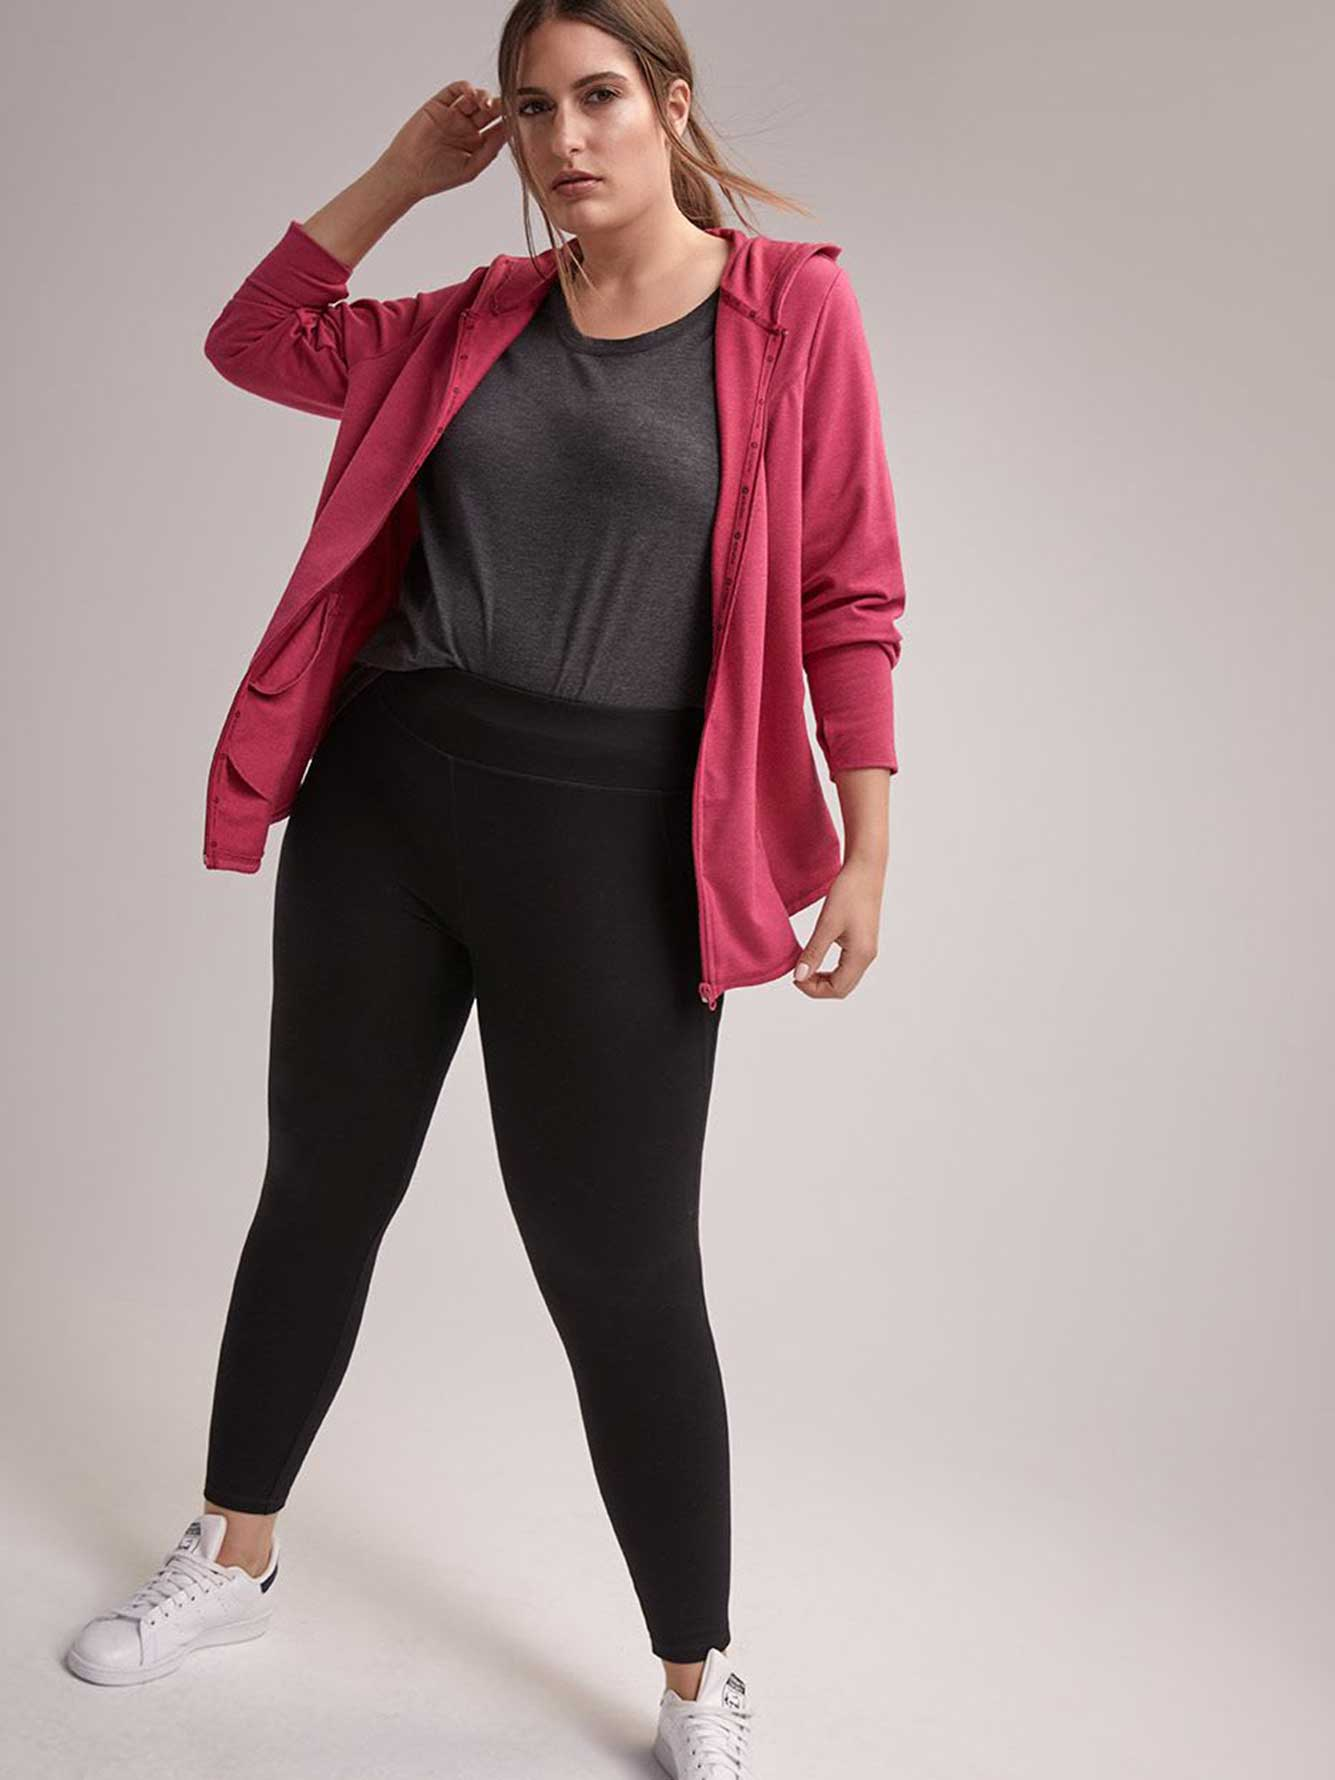 8adeef381e5c6 Petite Plus-Size Basic Legging - ActiveZone | Penningtons